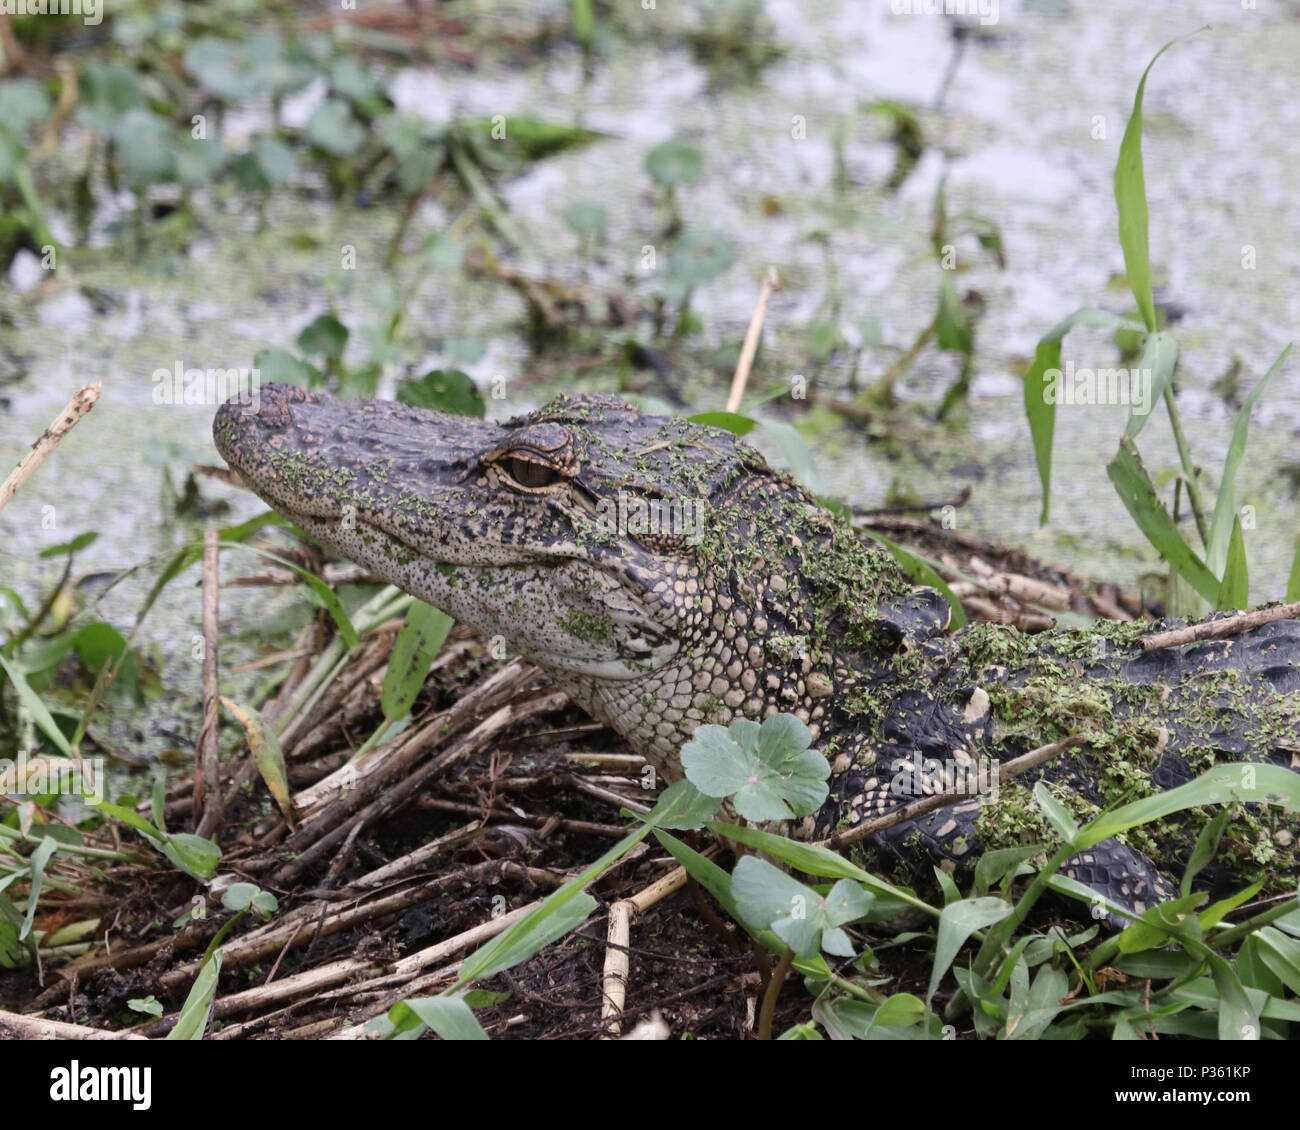 Alligator in profile looking over marshland - Stock Image